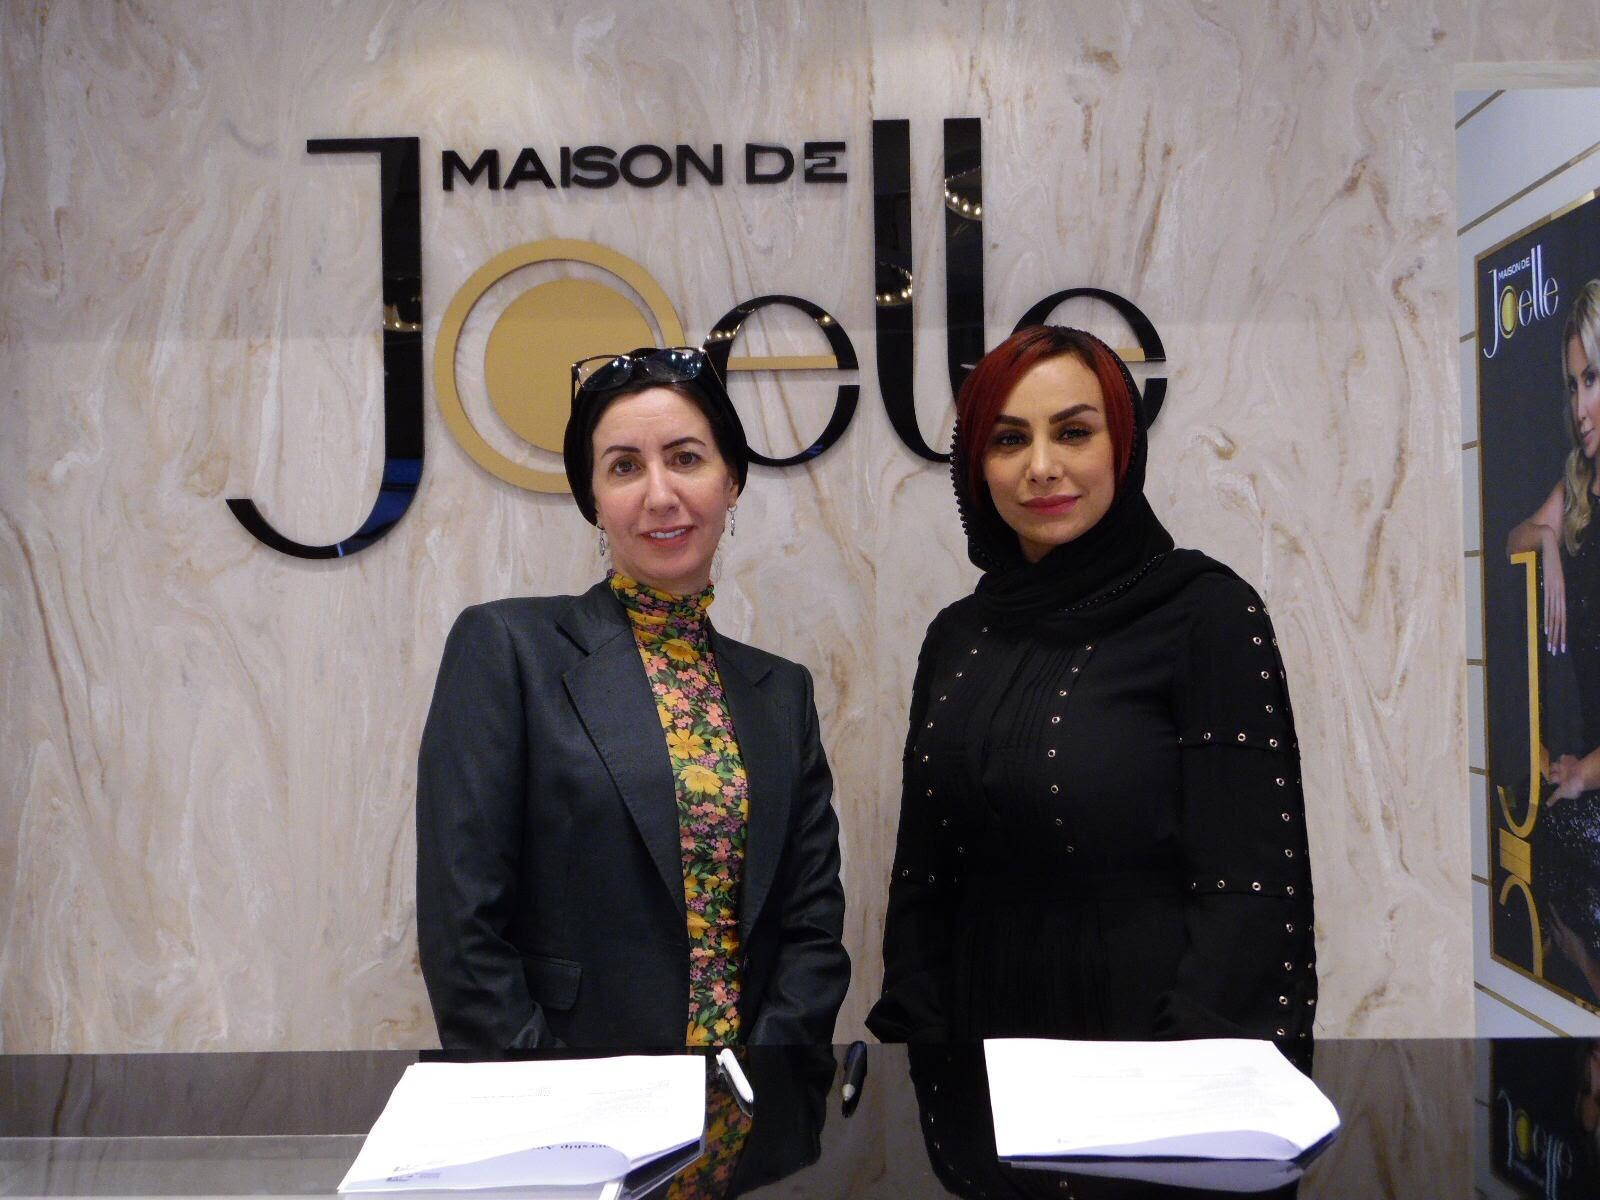 Bahrain's Fashion Incubator joins forces with Maison De Joelle